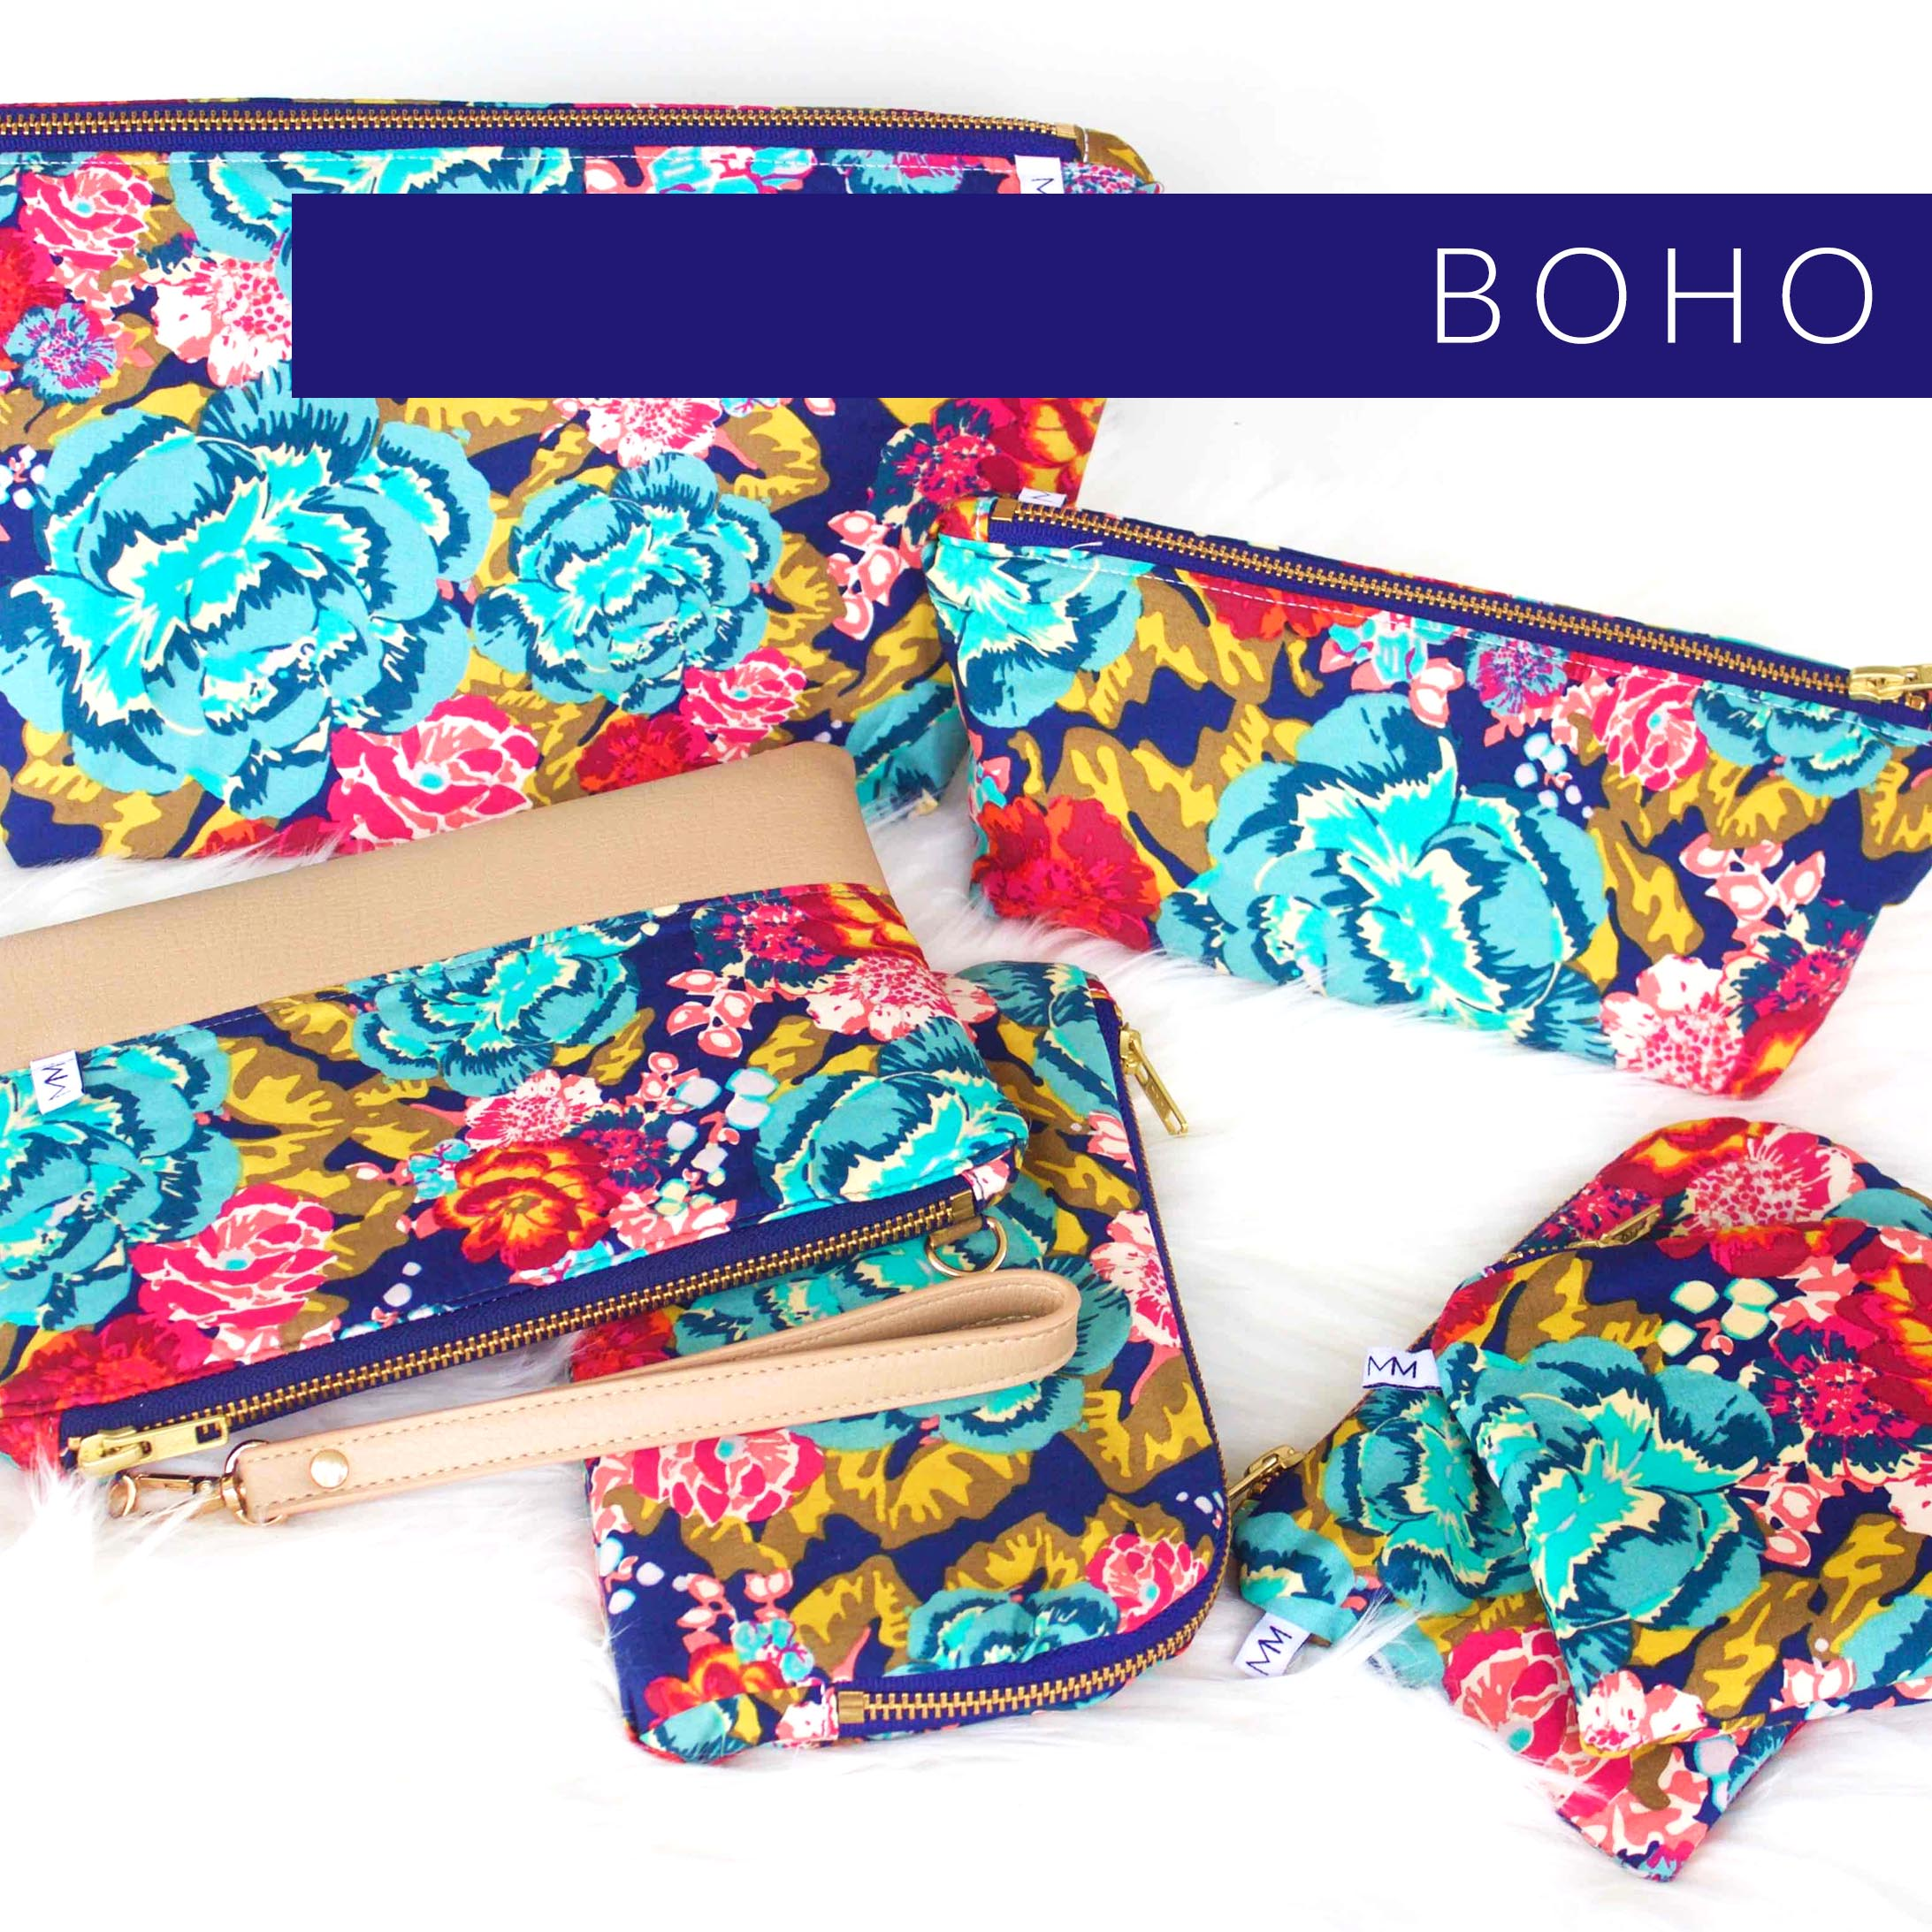 Boho Collection GRAPHIC.jpg